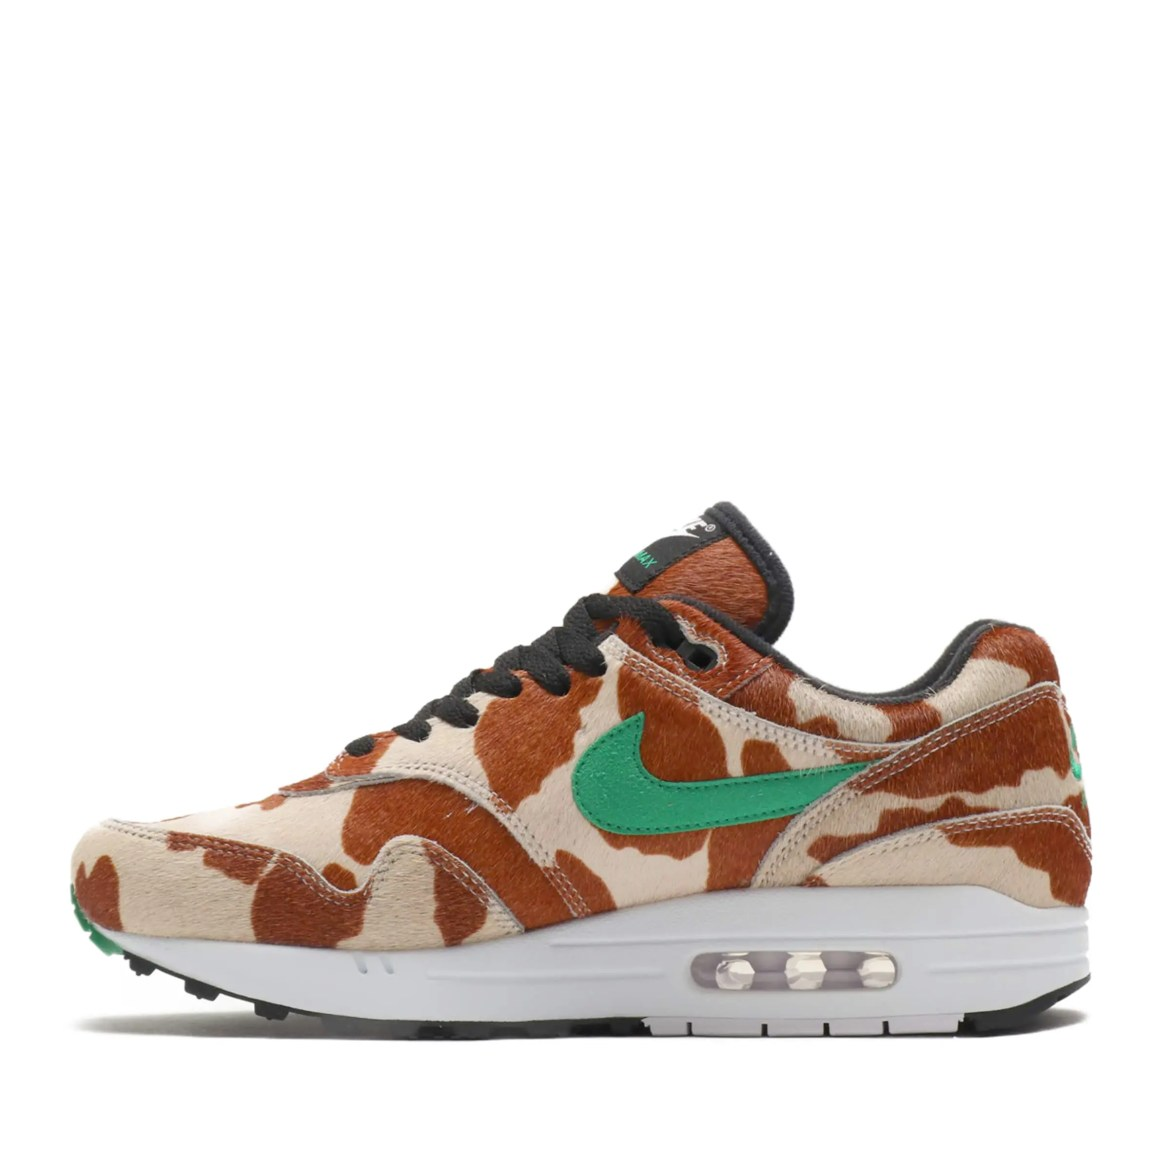 NIKE AIR MAX 1 ANIMAL Giraffe